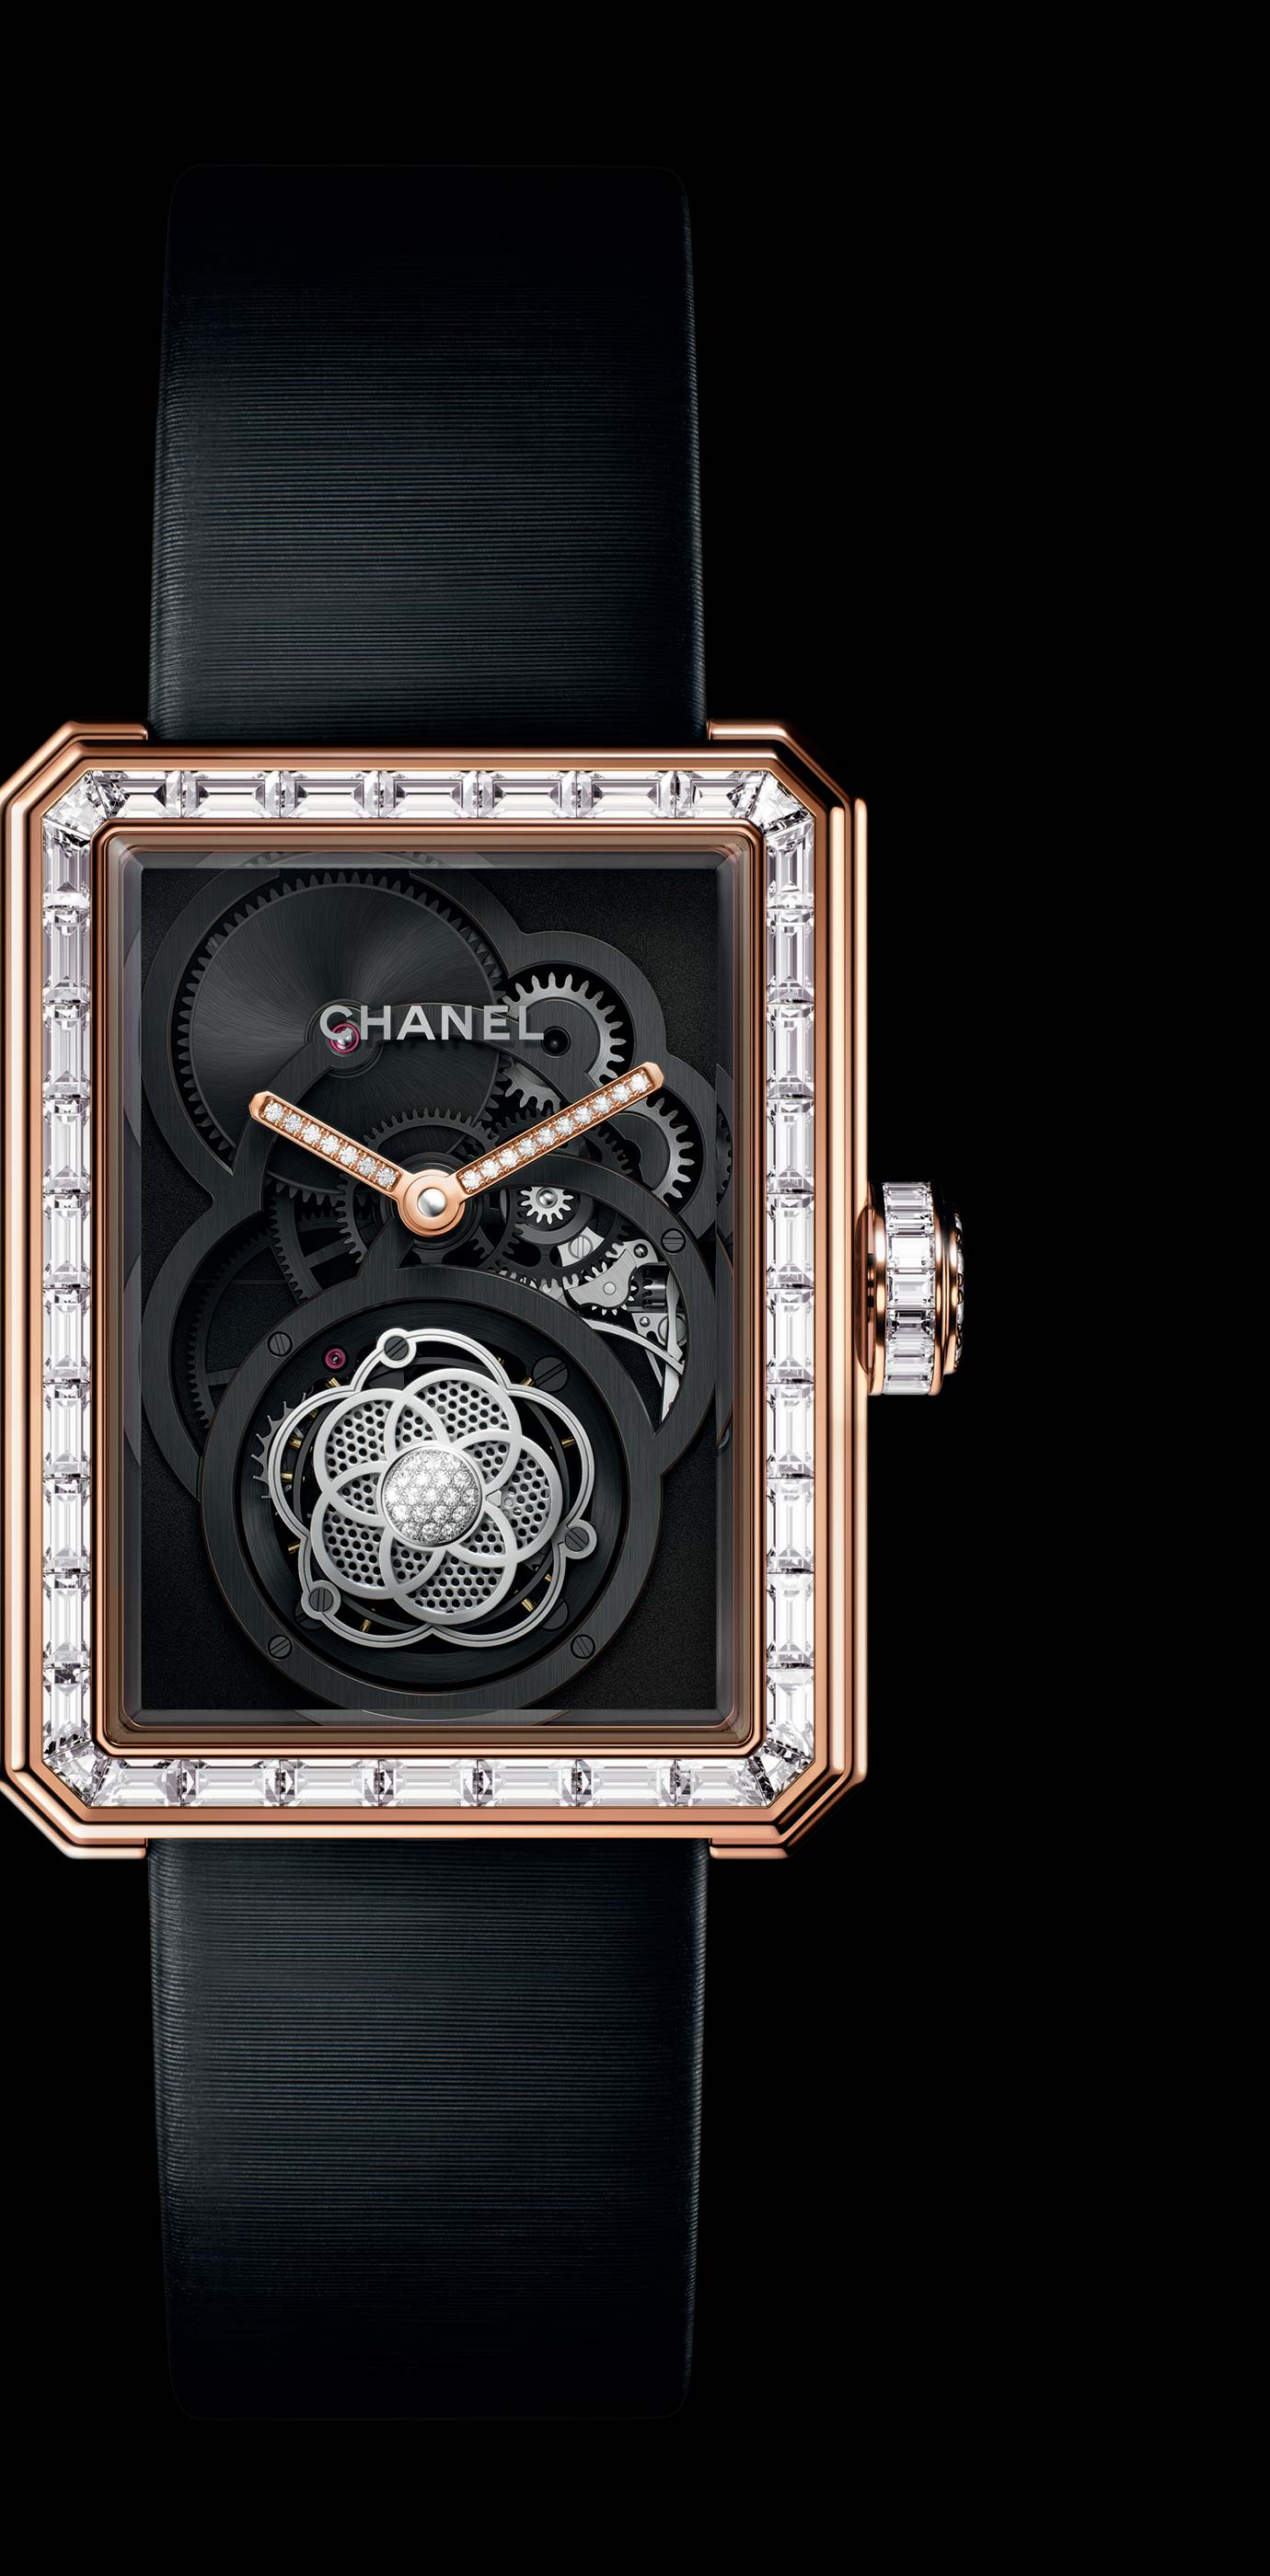 Première Flying Tourbillon Openwork watch in BEIGE GOLD, case, bezel and crown set with baguette- and brilliant-cut diamonds. - Enlarged view